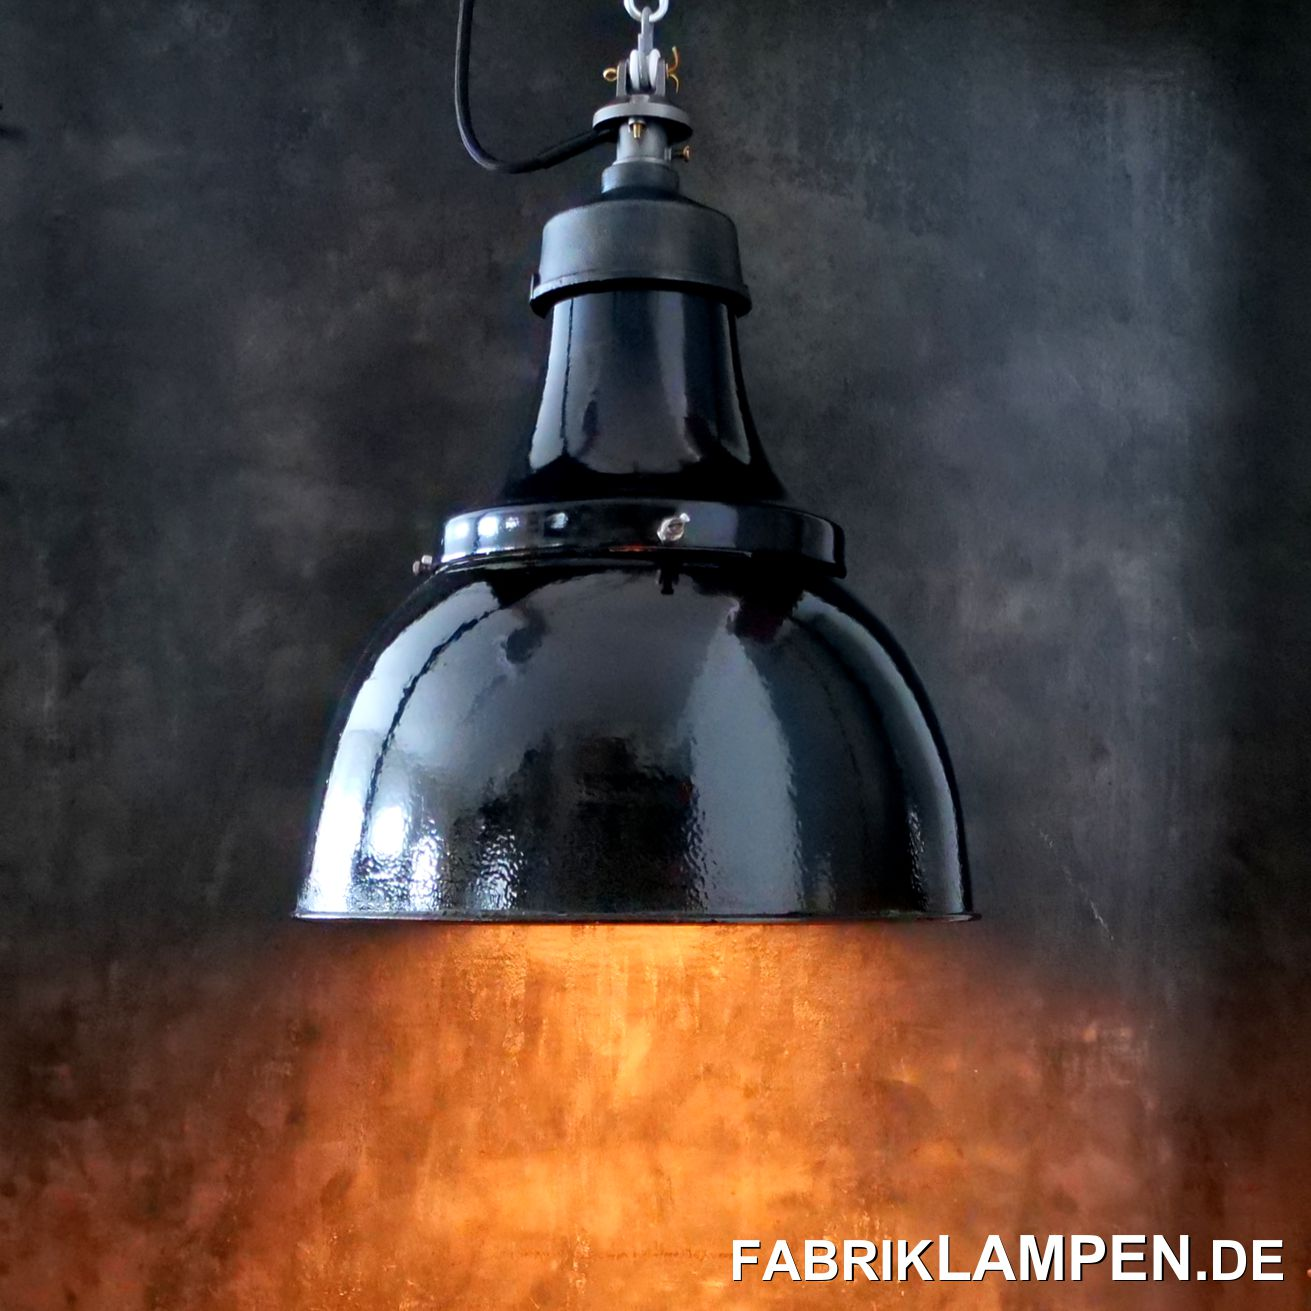 Old black industrial lamp, factory lamp with cast iron top from the 1930s. Provenance: BMW factory in Munich. The lamps were of German manufacture and hung in an old factory building in Munich until it was demolished. They were neatly soiled, but under the layer of dust the shades were in the best condition.  These lamps were usually used in harsh conditions and have massive signs of use, this lot is unusually beautifully preserved.The industrial lamps have very minor signs of use from the past decades (chips, rust spots, scratches, discolouration and co.), primarily at the bottom of the screws. The old factory lamps have been restored: cleaned, conserved and newly electrified, with new E27 ceramic sockets.Material: black (inside white) enameled steel sheet, cast iron top, cast steel suspension.Your old industrial lamp comes with 2 metres of textile cable colour of your choice (other lengths are of course possible) and solid suspension eye for safe hanging. For an extra charge, the industrial lamps can also be supplied with chain or tubular steel suspension. We can also offer canopies.Old industrial lamp, the dimensions: Height of the lamps approx. 40 cm (46 cm with suspension), diameter lamp (shade) approx. 37 cm, weight approx. 3 kg.